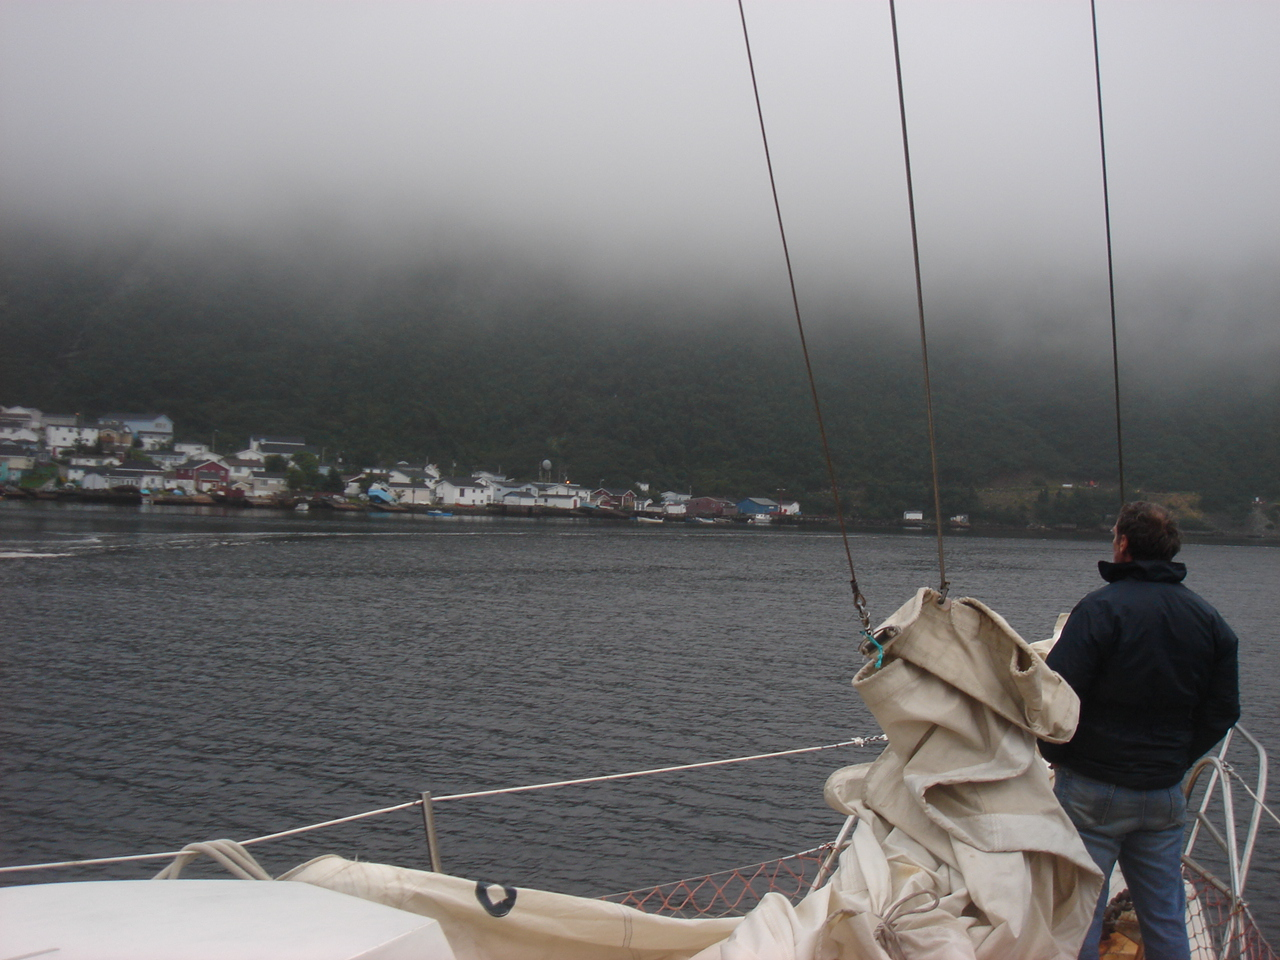 fog, gale, or doldrums...take your pick!